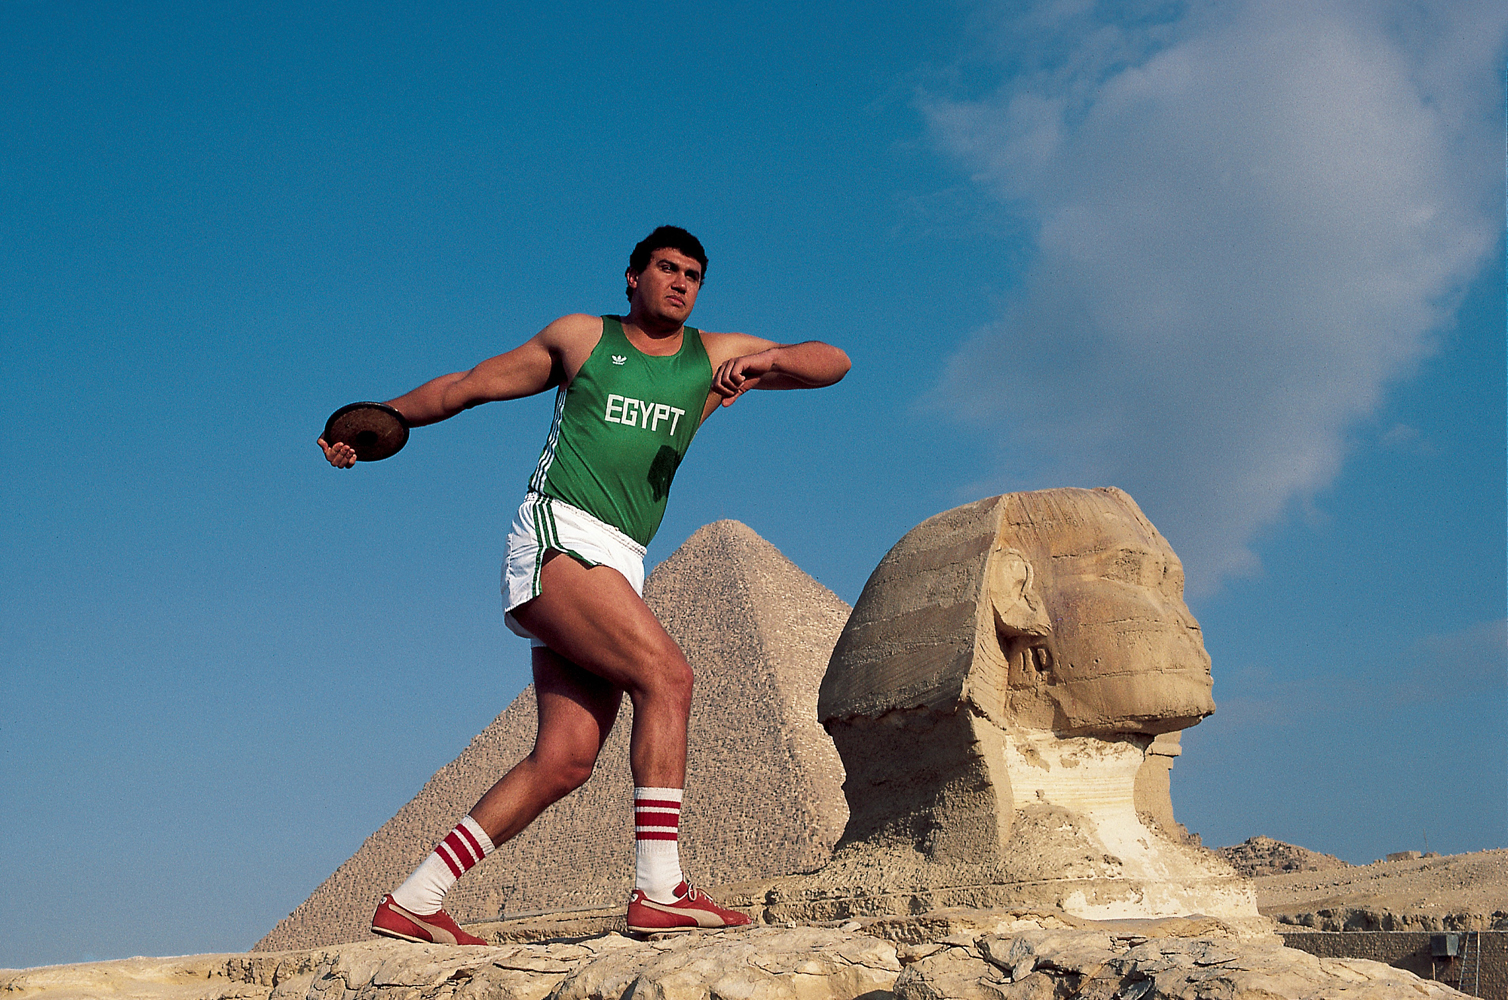 Mohamed Naguib Hamed poses with discus in front of the Pyramid of Khufu and the Great Sphinx in Giza, Egypt.